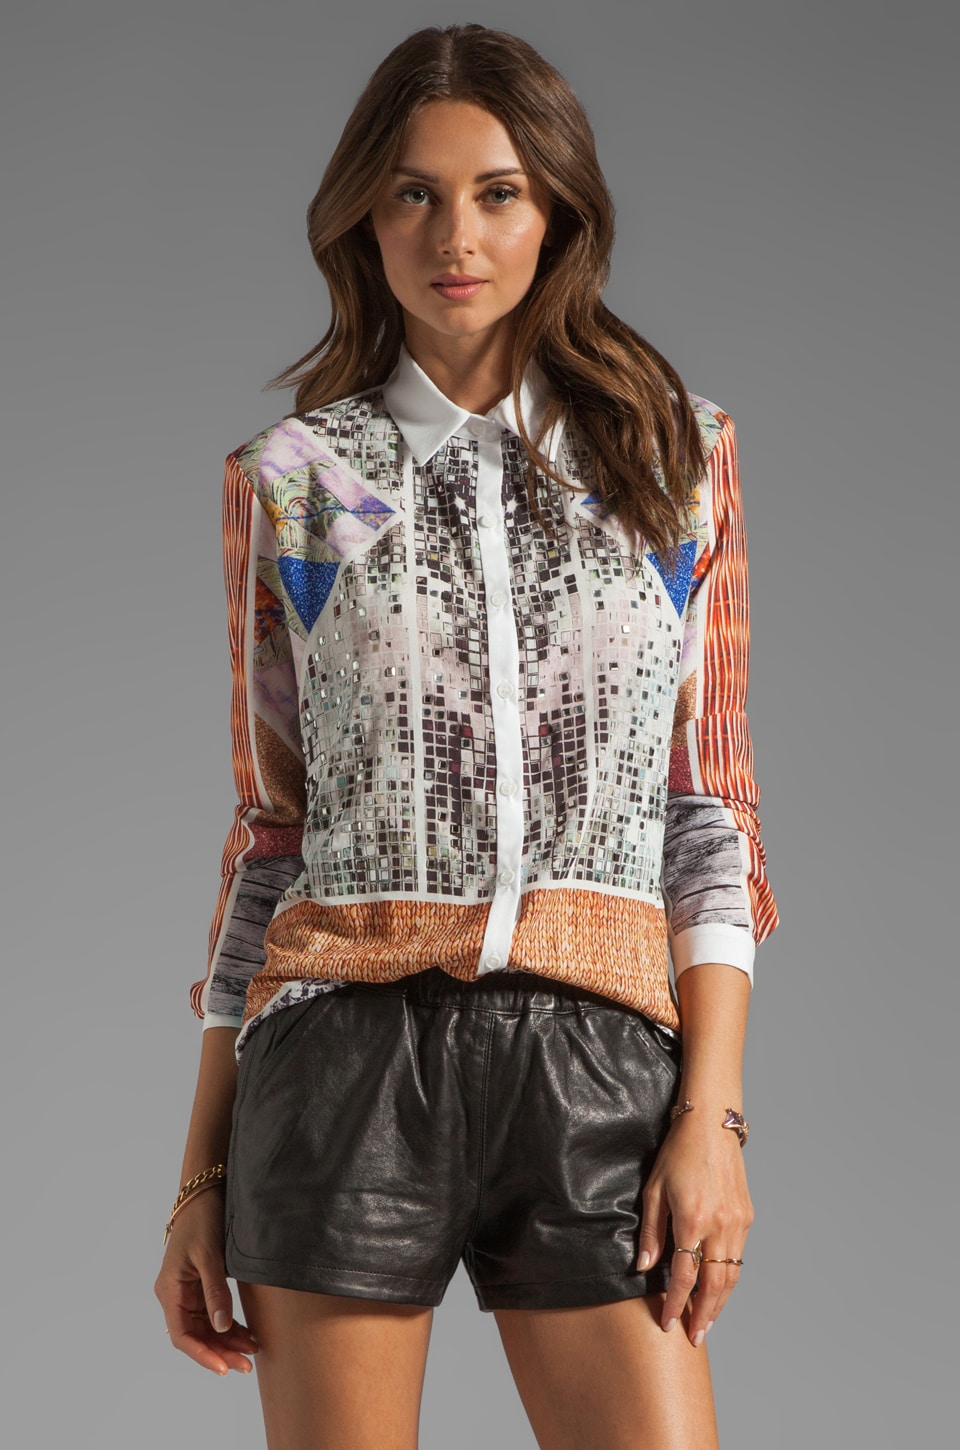 Clover Canyon Roadside Quilt Studded Blouse in Multi